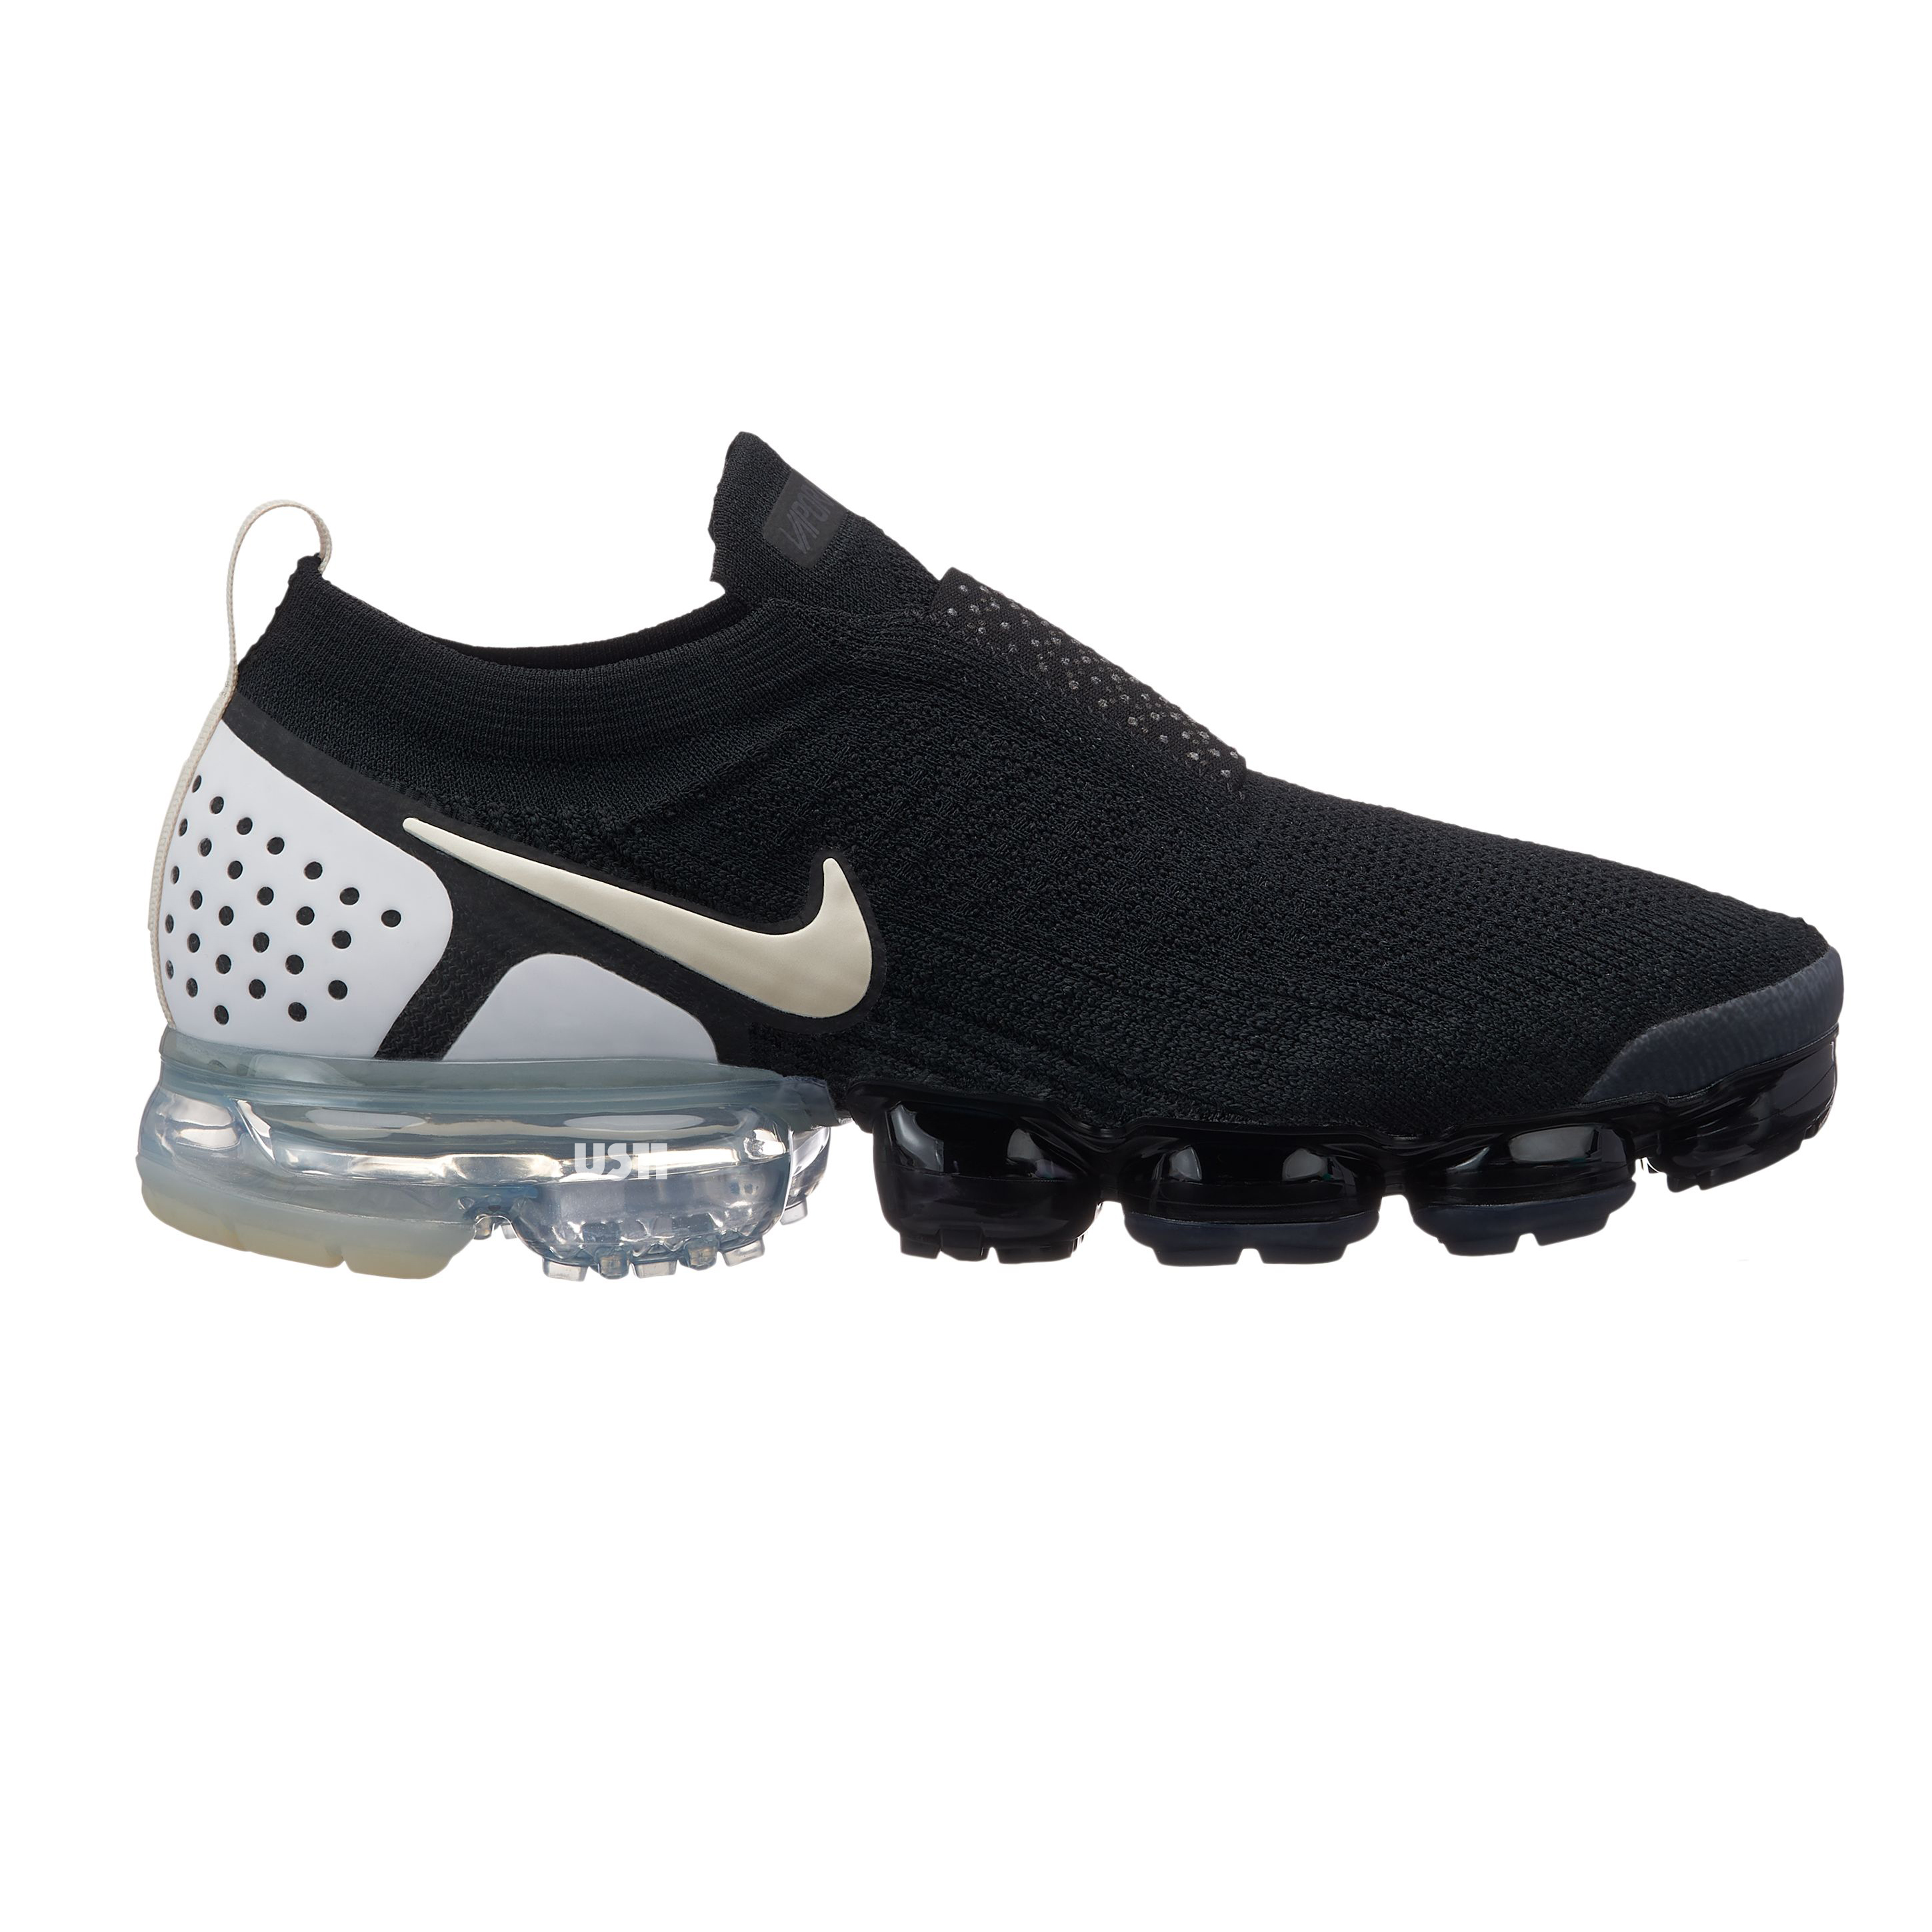 Lavar ventanas Cuervo foso  The Nike Air VaporMax Flyknit Moc 2 Surfaces Online - WearTesters